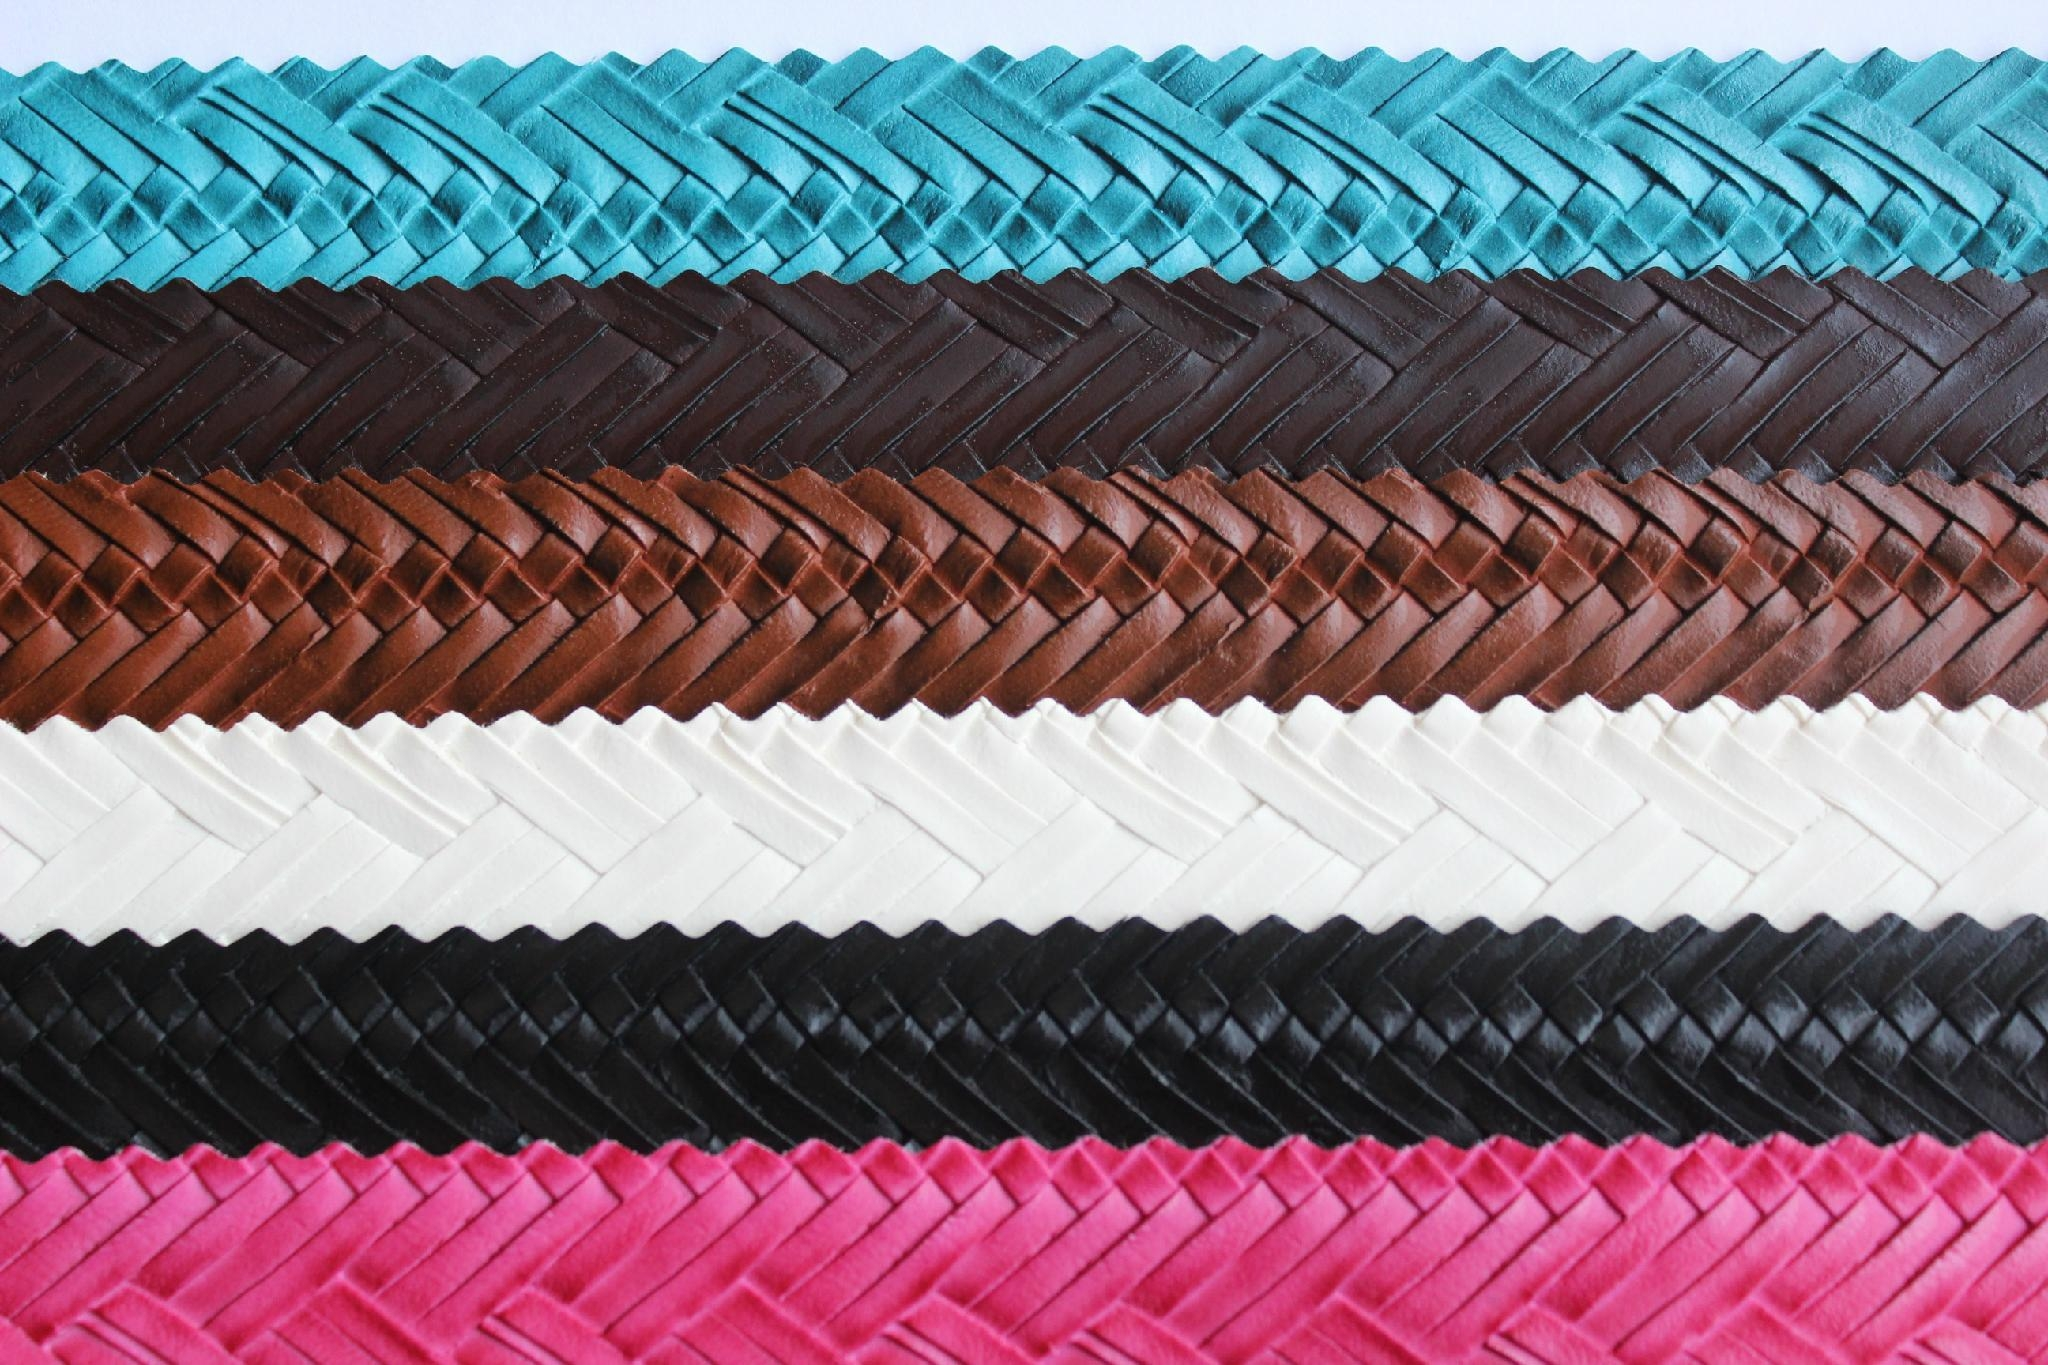 Guangzhou hot selling woven pattern pvc embossed leather fabric for making bags 5